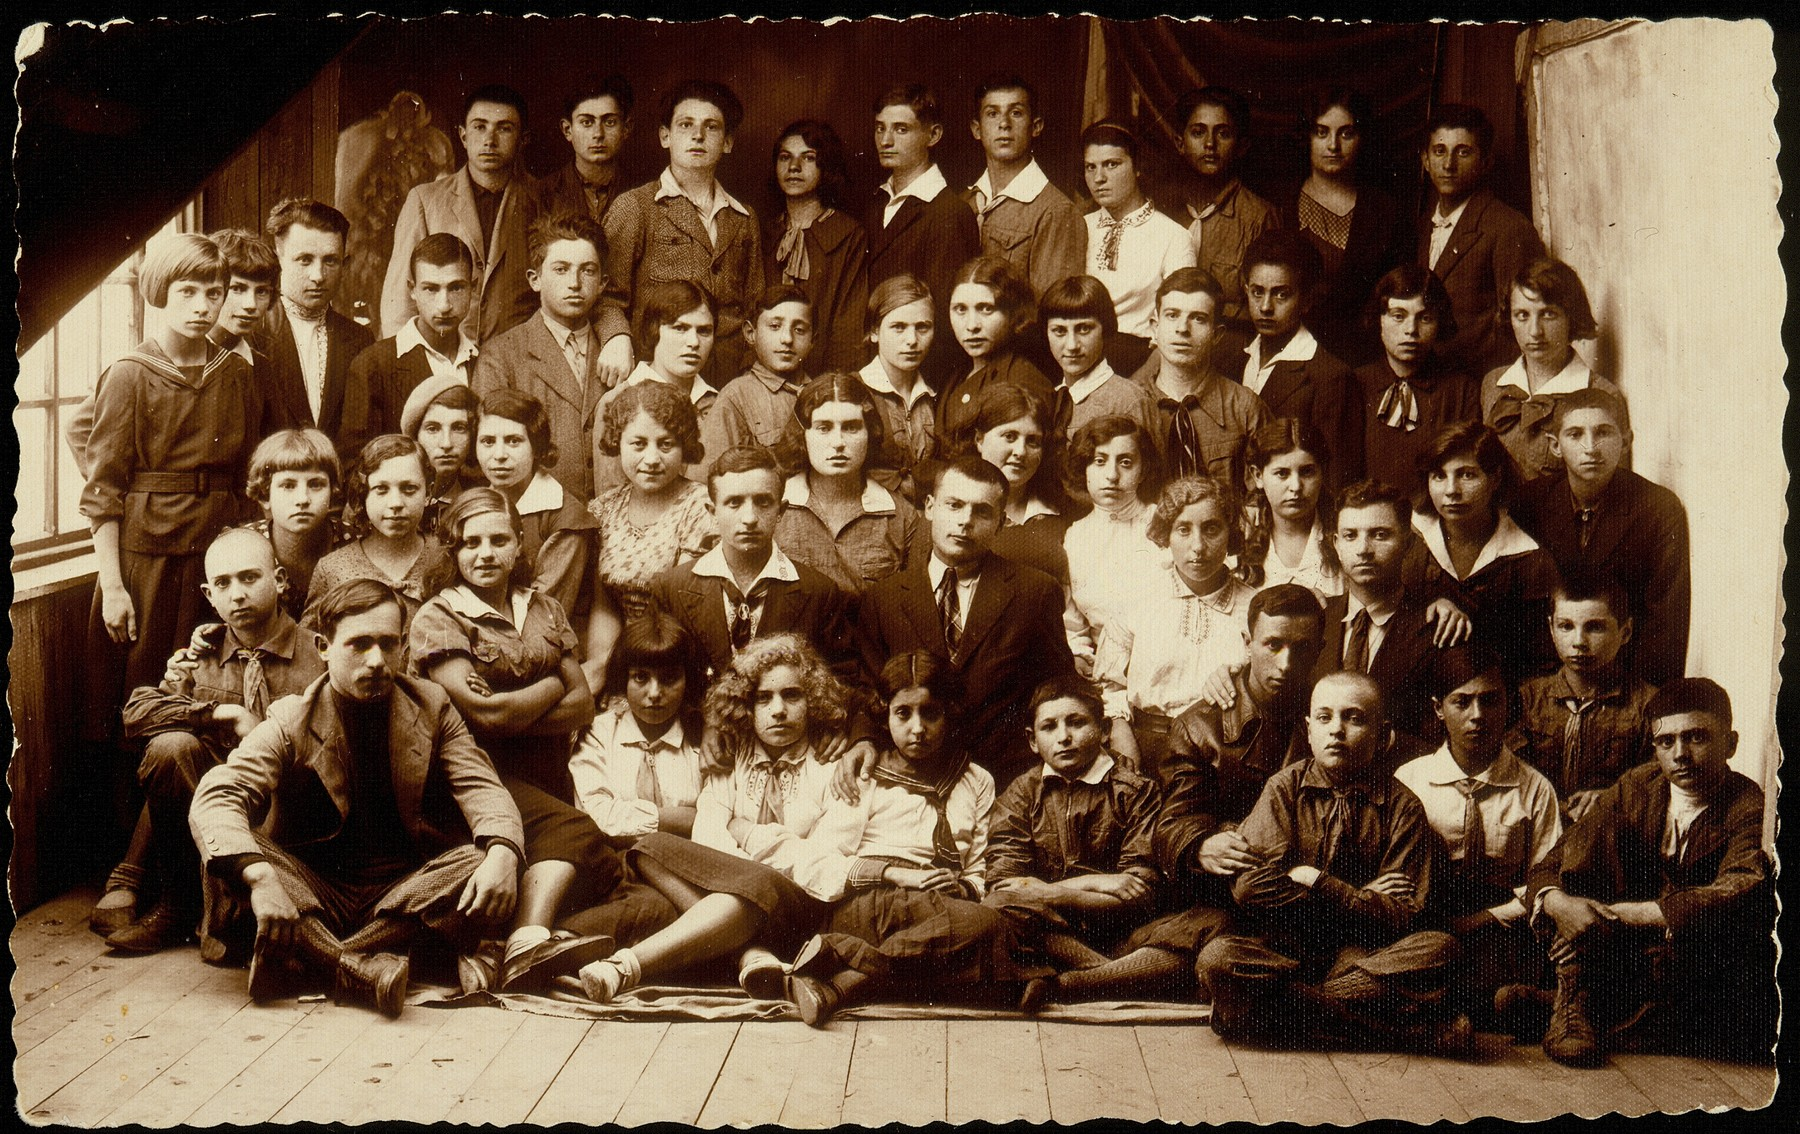 A special meeting of Hashomer Hatzair in Eisiskes attended by counselors from Vilna, including Abba Kovner.    Among those pictured are: top row, from right to left: Boyarski, Krupski, Kaplan, Bichvid, unknown, son of Aronka, Reb Yoshe the coachman's son, unknown;  second rowfrom the top:  Michalowski, Boyarski, Krupski, Bichvid, Cofnas, Portnoy, Borshanski, Levitan (first names are unknown); third row from the top: Herzl, Miriam Lewinson, Lebovitz, Ginunski; fourth row from the top: Garmenishki, Rosenblum, Shalom Kahn, Reuven Paikowski.  Sitting on the floor are Abba Kovner (with his hand on the boy in front of him), Manosh Blacharowicz, and Stoller (the girl in the center with blond curly hair).    Only 11 of those pictured survived the Holocaust, among them Abba Kovner and Reuven Paikowski.